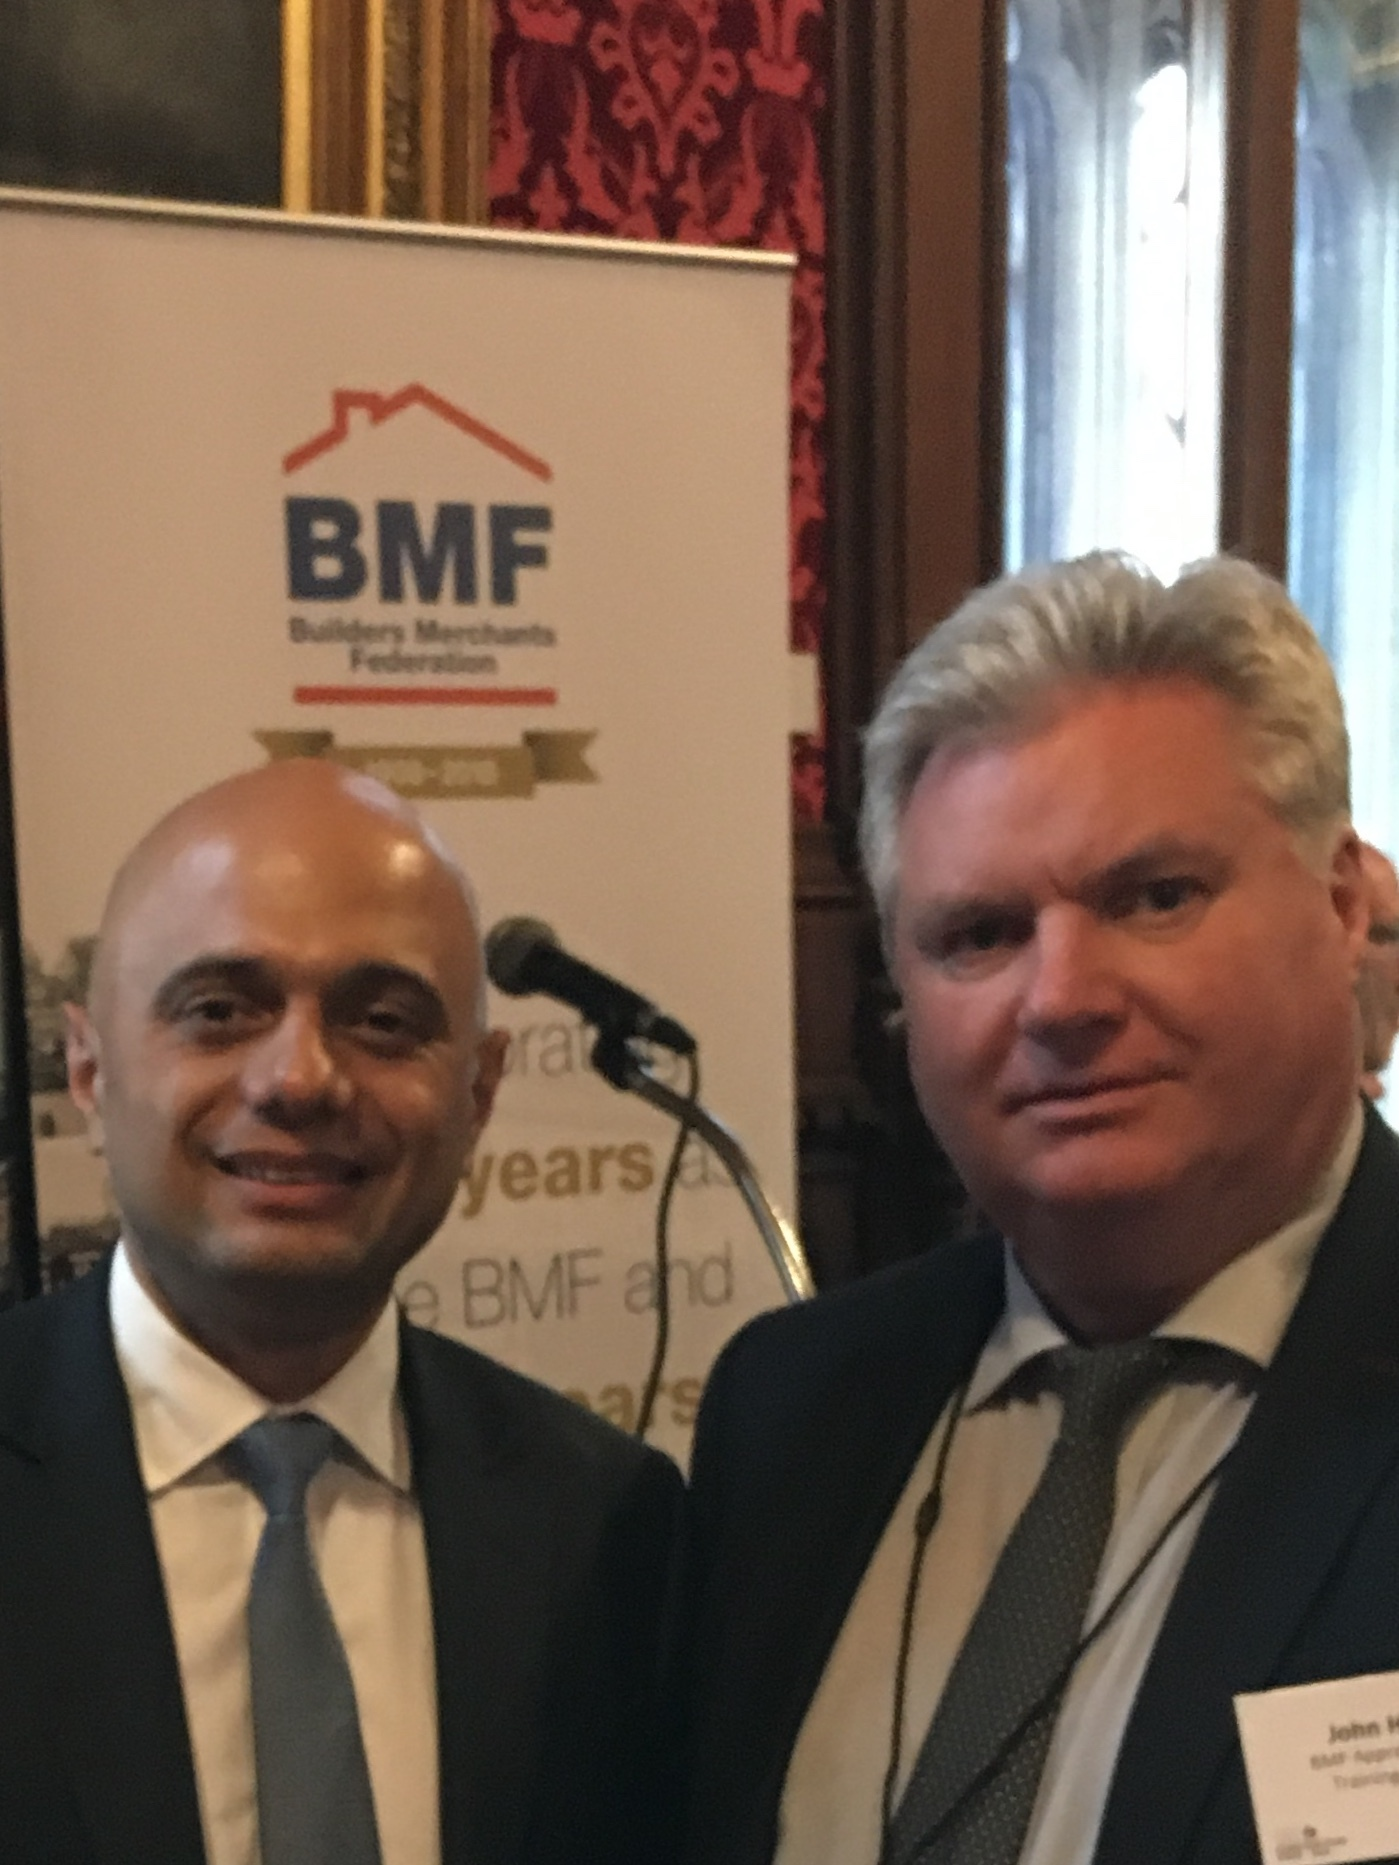 MP Sajid Javid pictured with John Henry.